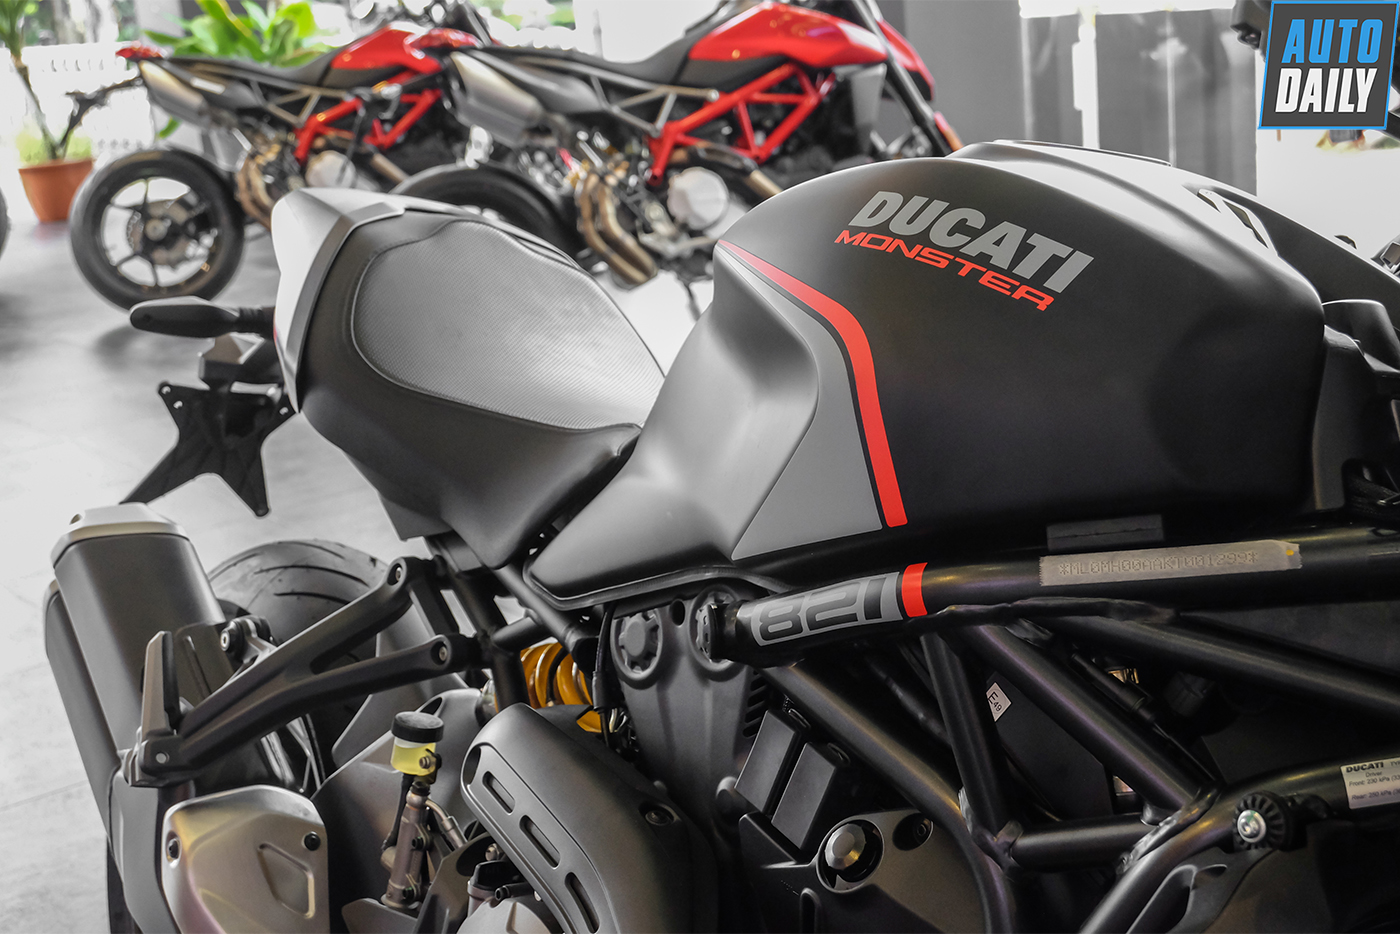 ducati-monster-821-stealth-1.jpg